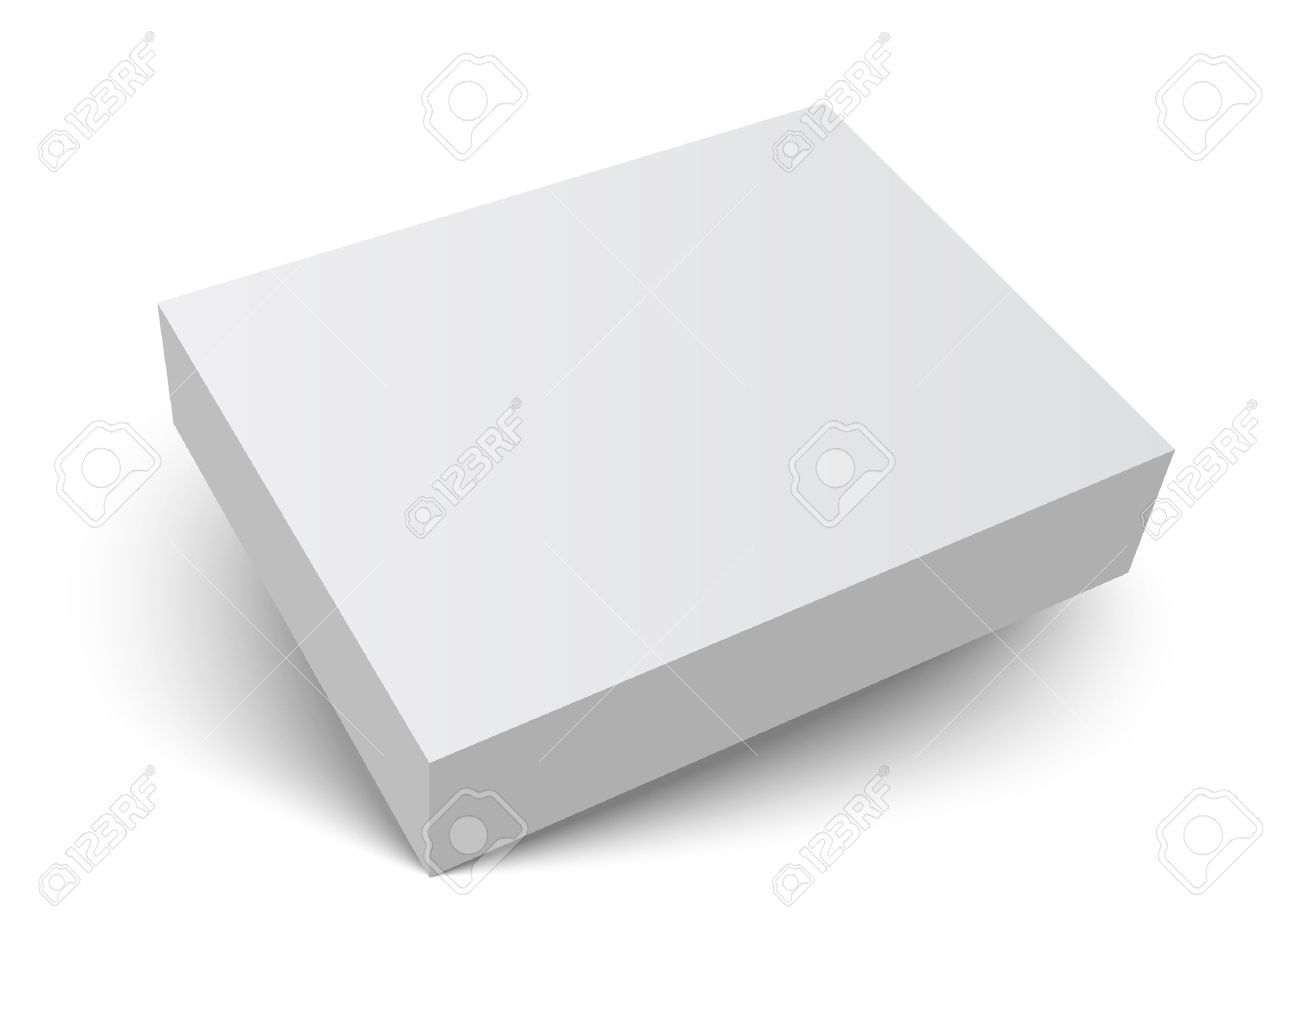 Blank Gray Box Isolated On White. Packaging Design 3d Template ...